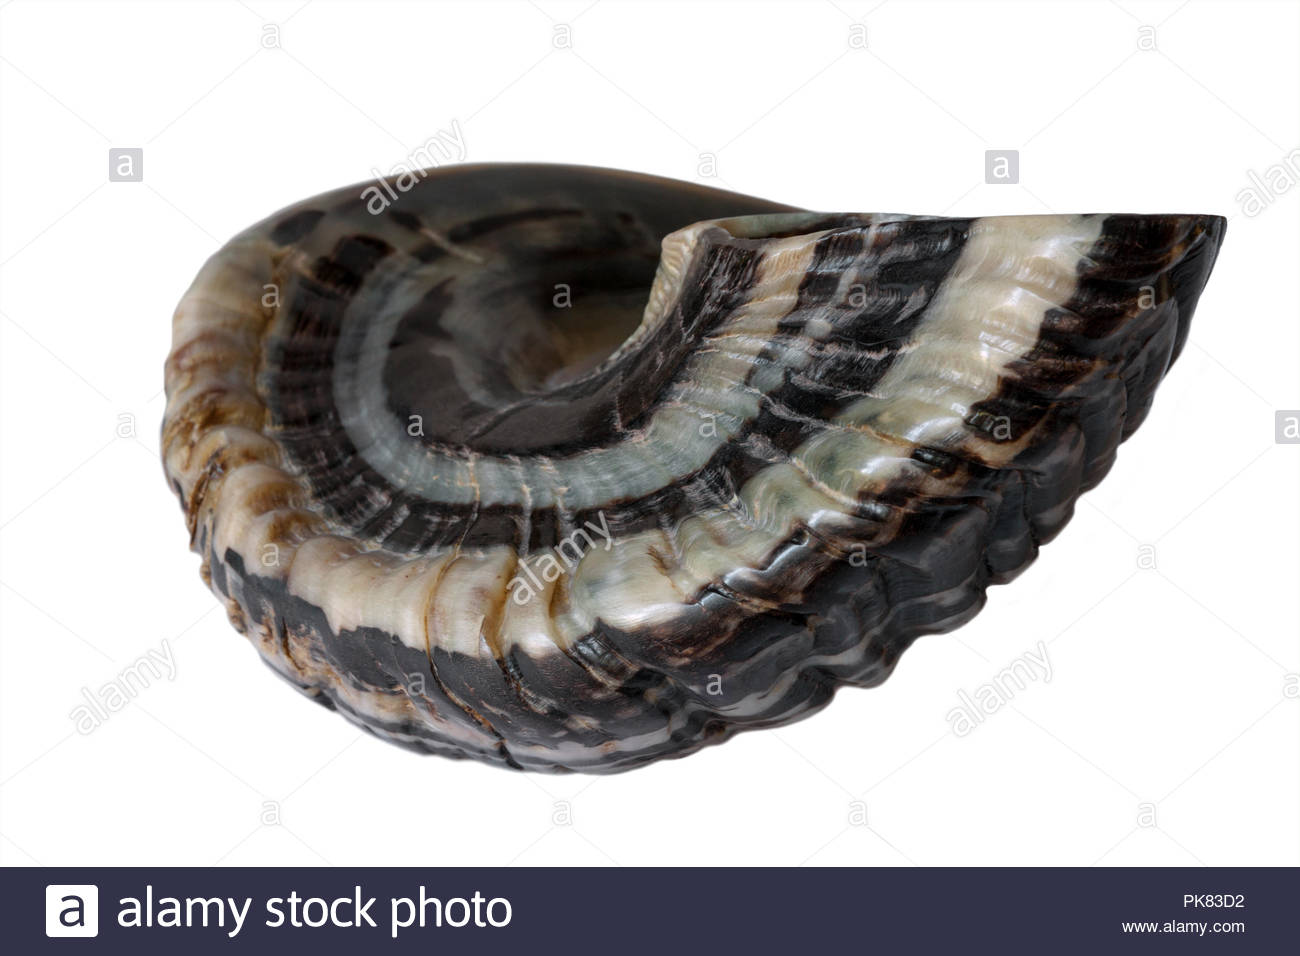 Shofar; a ram's horn trumpet used by the Hebrew people in Israel throughout the Bible - Genuine Ram's Horn not a deer's horn - solid white background - Stock Image